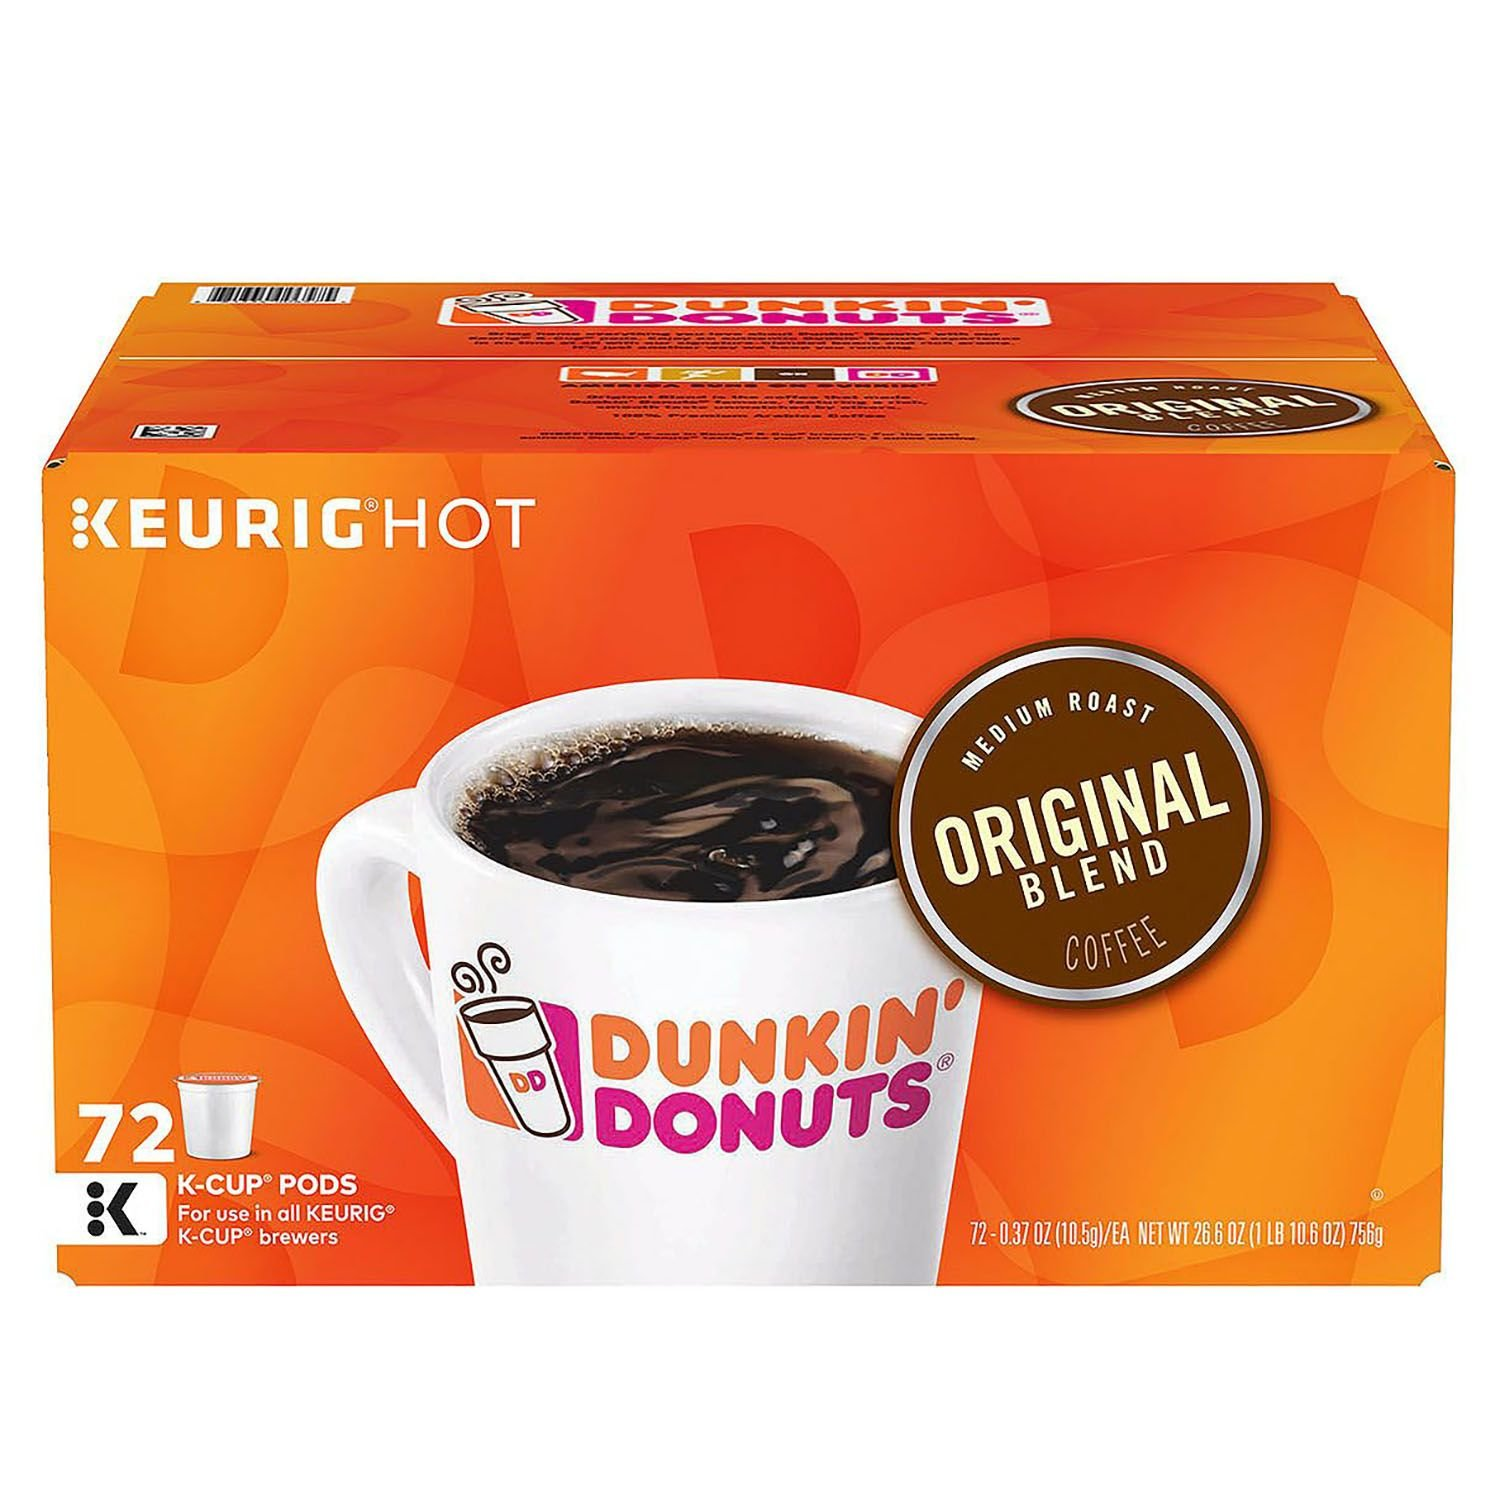 Dunkin' Donuts Original Blend Coffee K-Cup Pods, 1 Box of 72 Count K-Cups